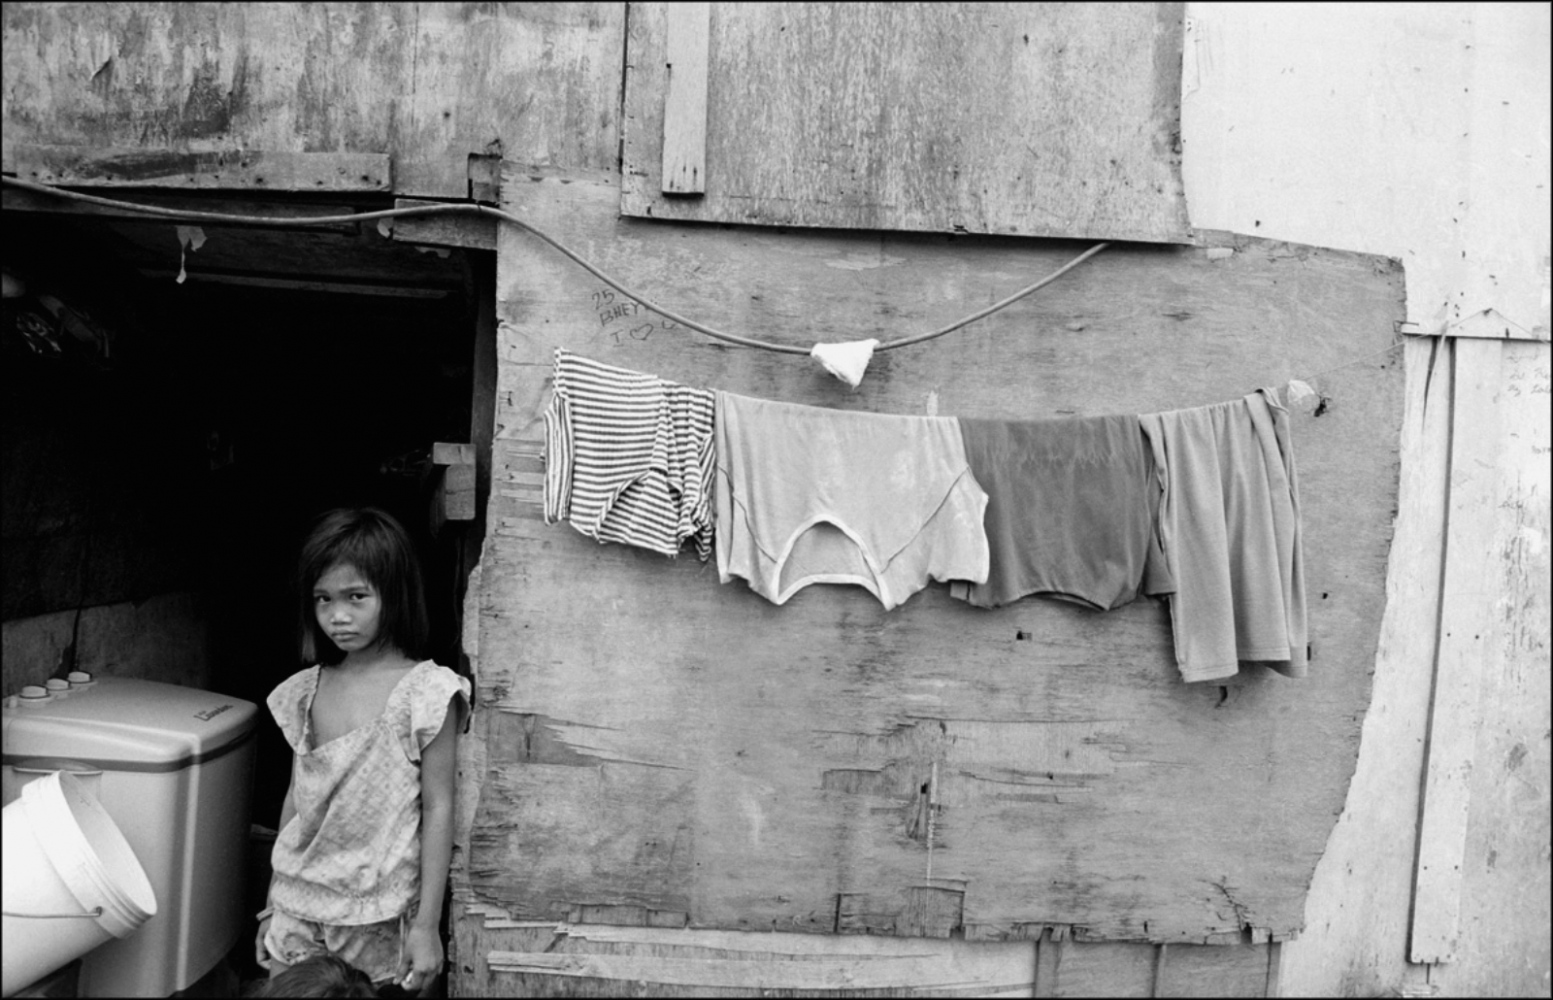 Girl Standing by Hanging Shirts, San Andrea Bridge, Manila, Philippines, November 2005